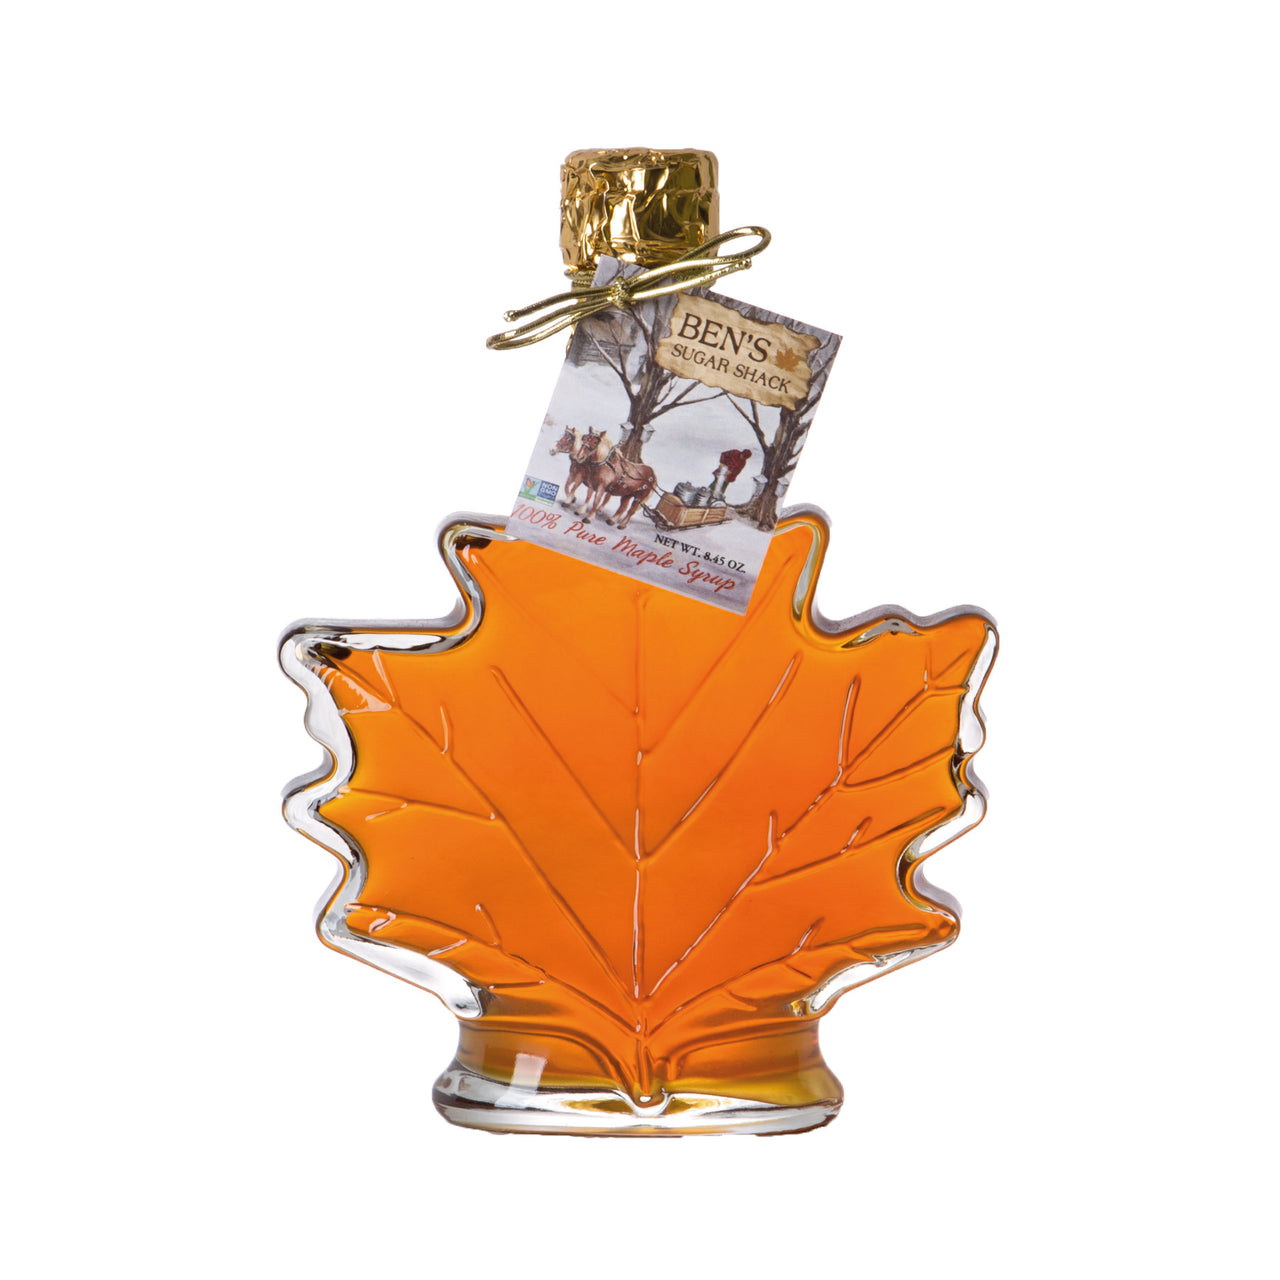 8.45 oz Glass Leaf (Corporate Gift Favor)